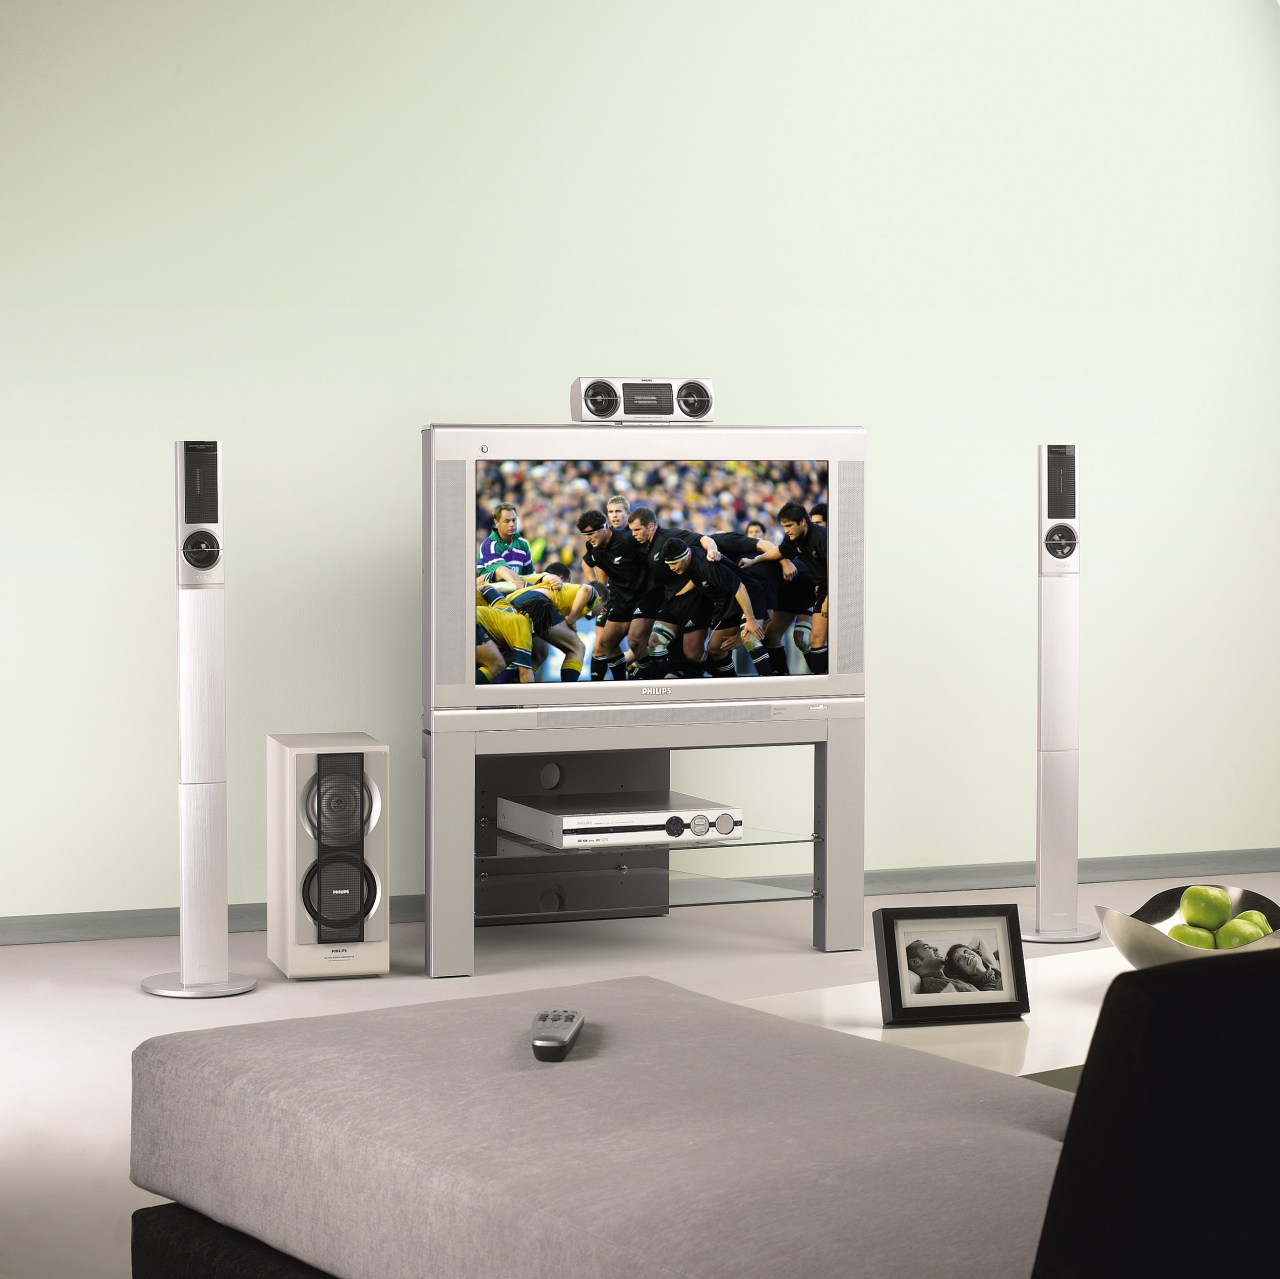 View of the home theatre system furniture, interior design, multimedia, product, product design, white, gray